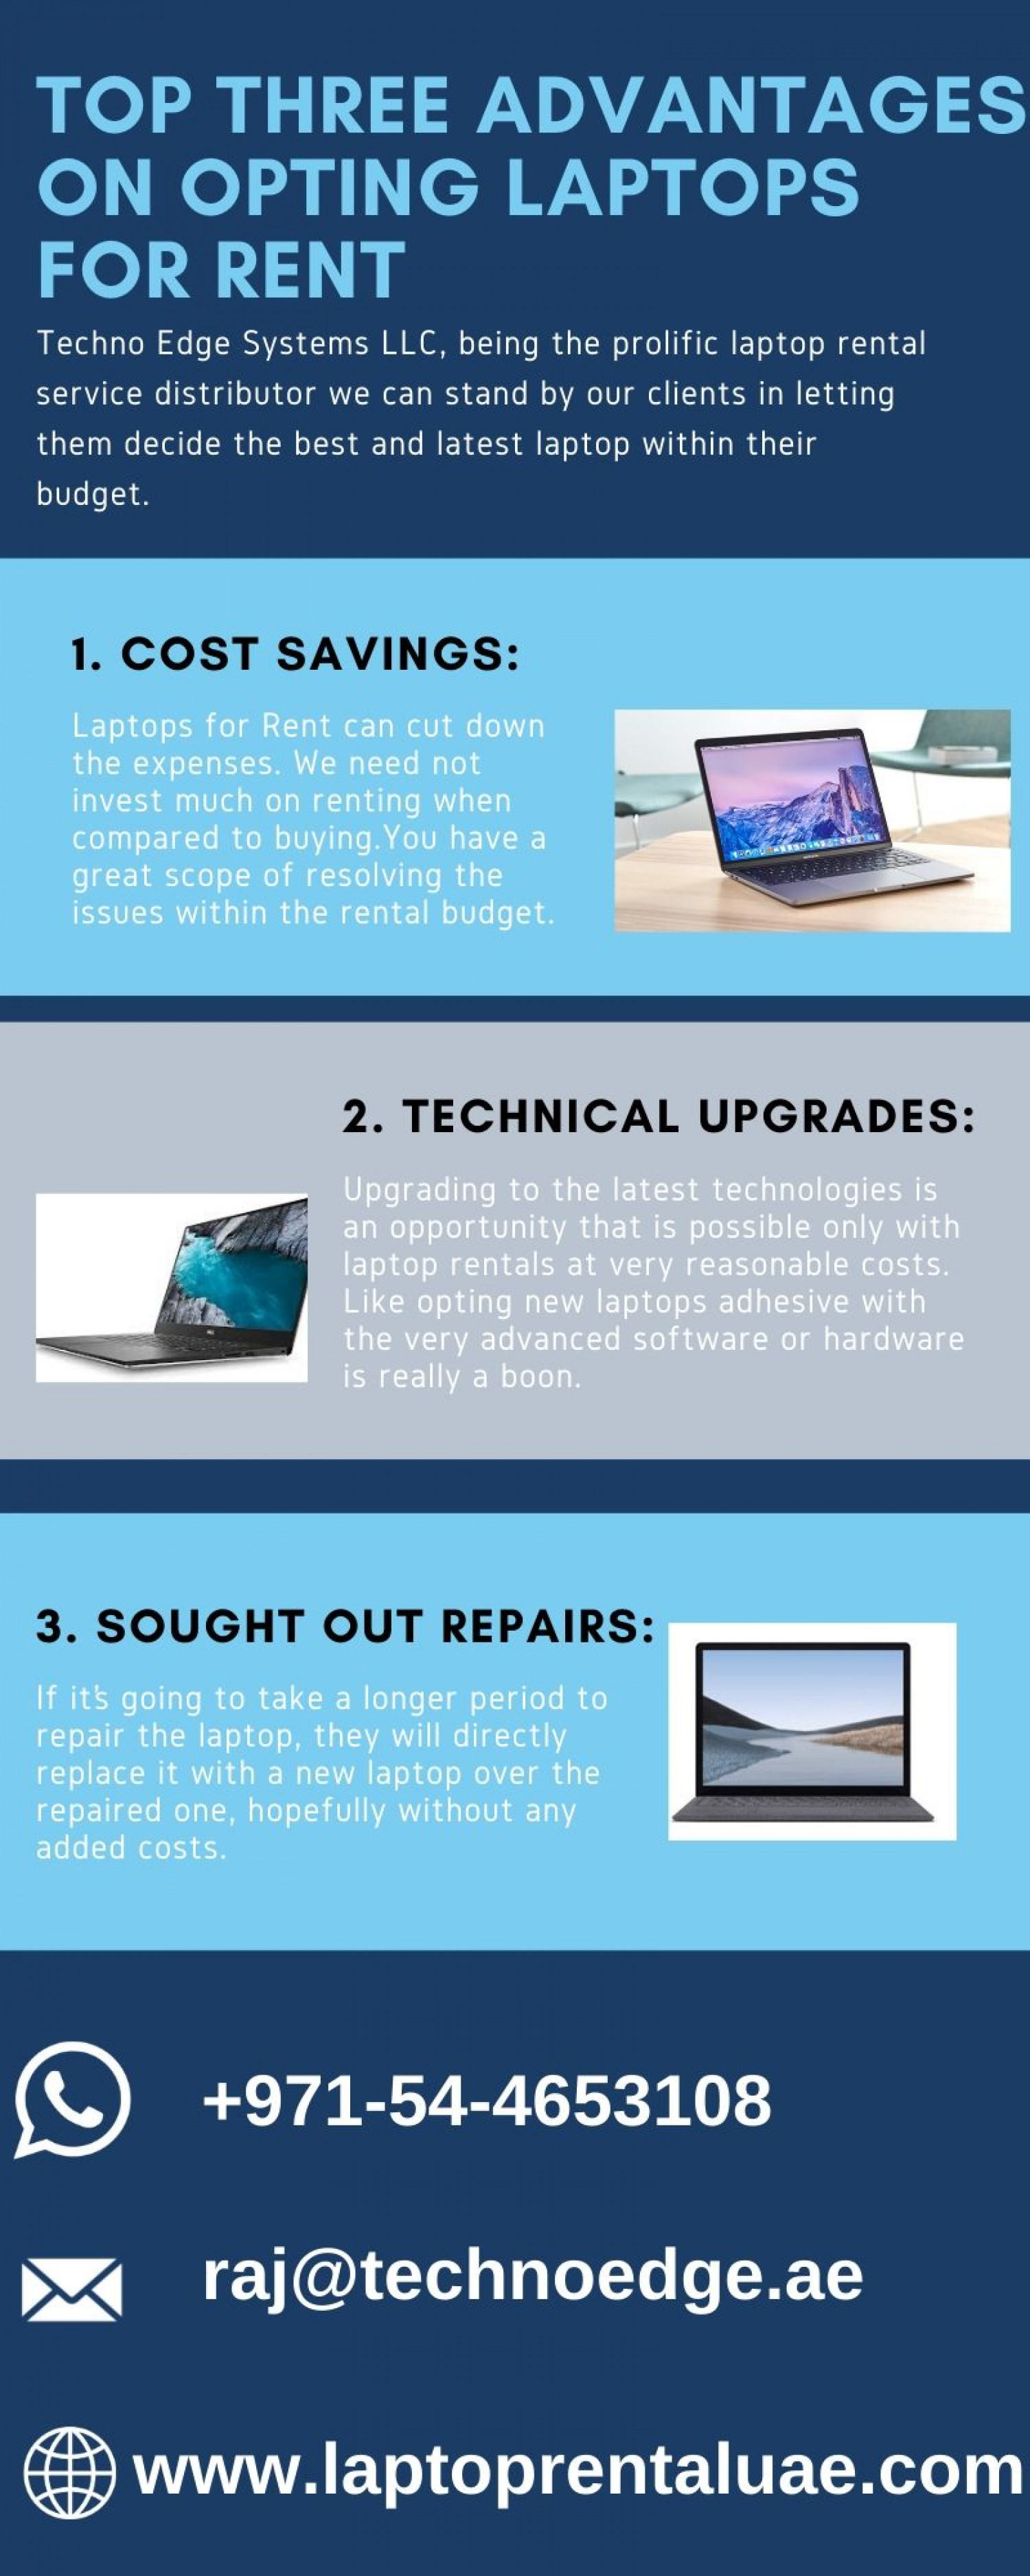 Top Three Advantages on Opting Laptops for Rent Infographic